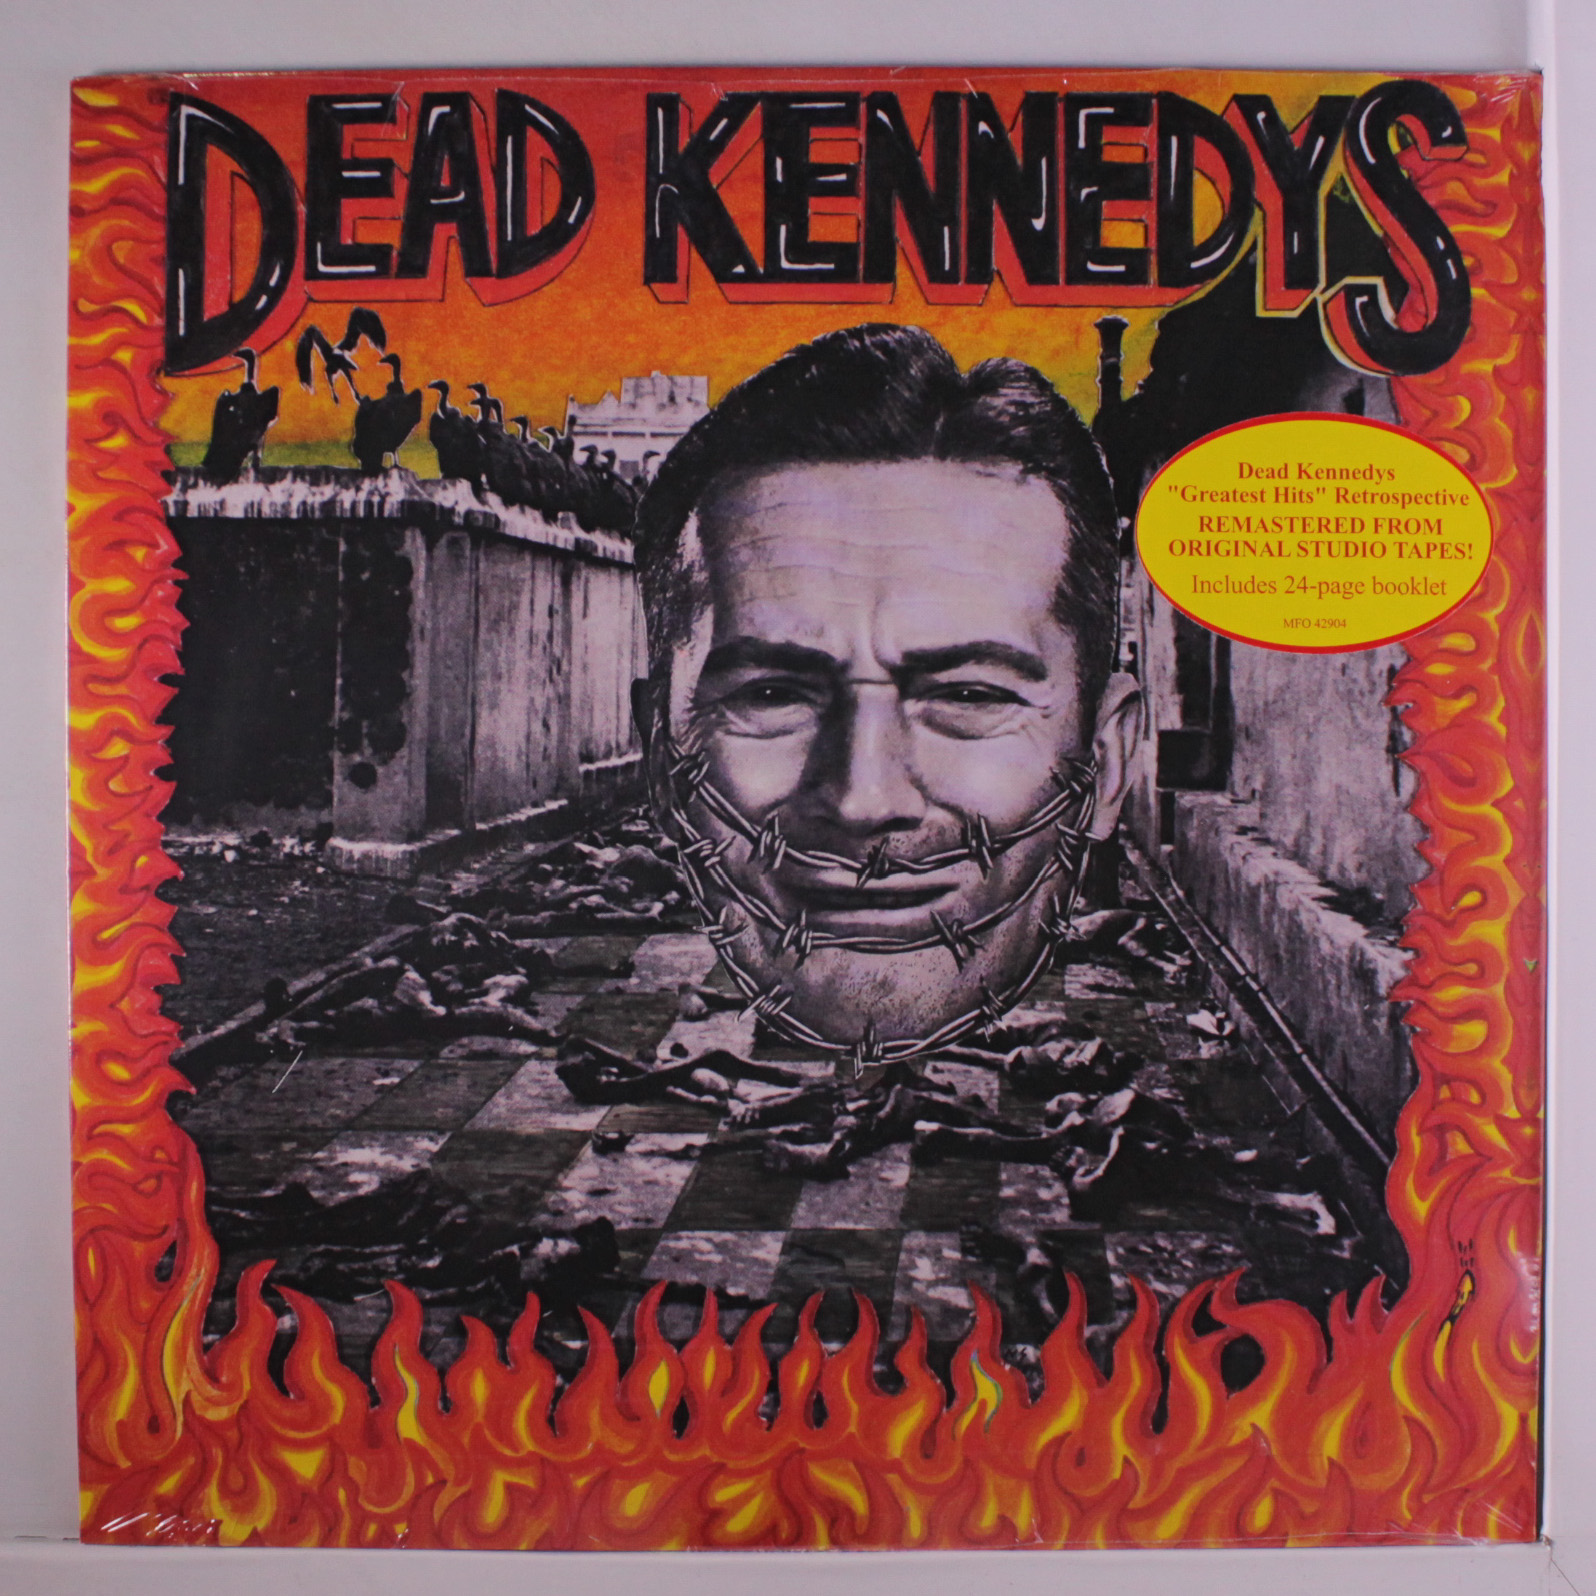 DEAD KENNEDY'S - GIVE ME CONVENIENCE OR GIVE ME DEATH $20 remastered from original tapes 24-page booklet @ 1987 Decay Music